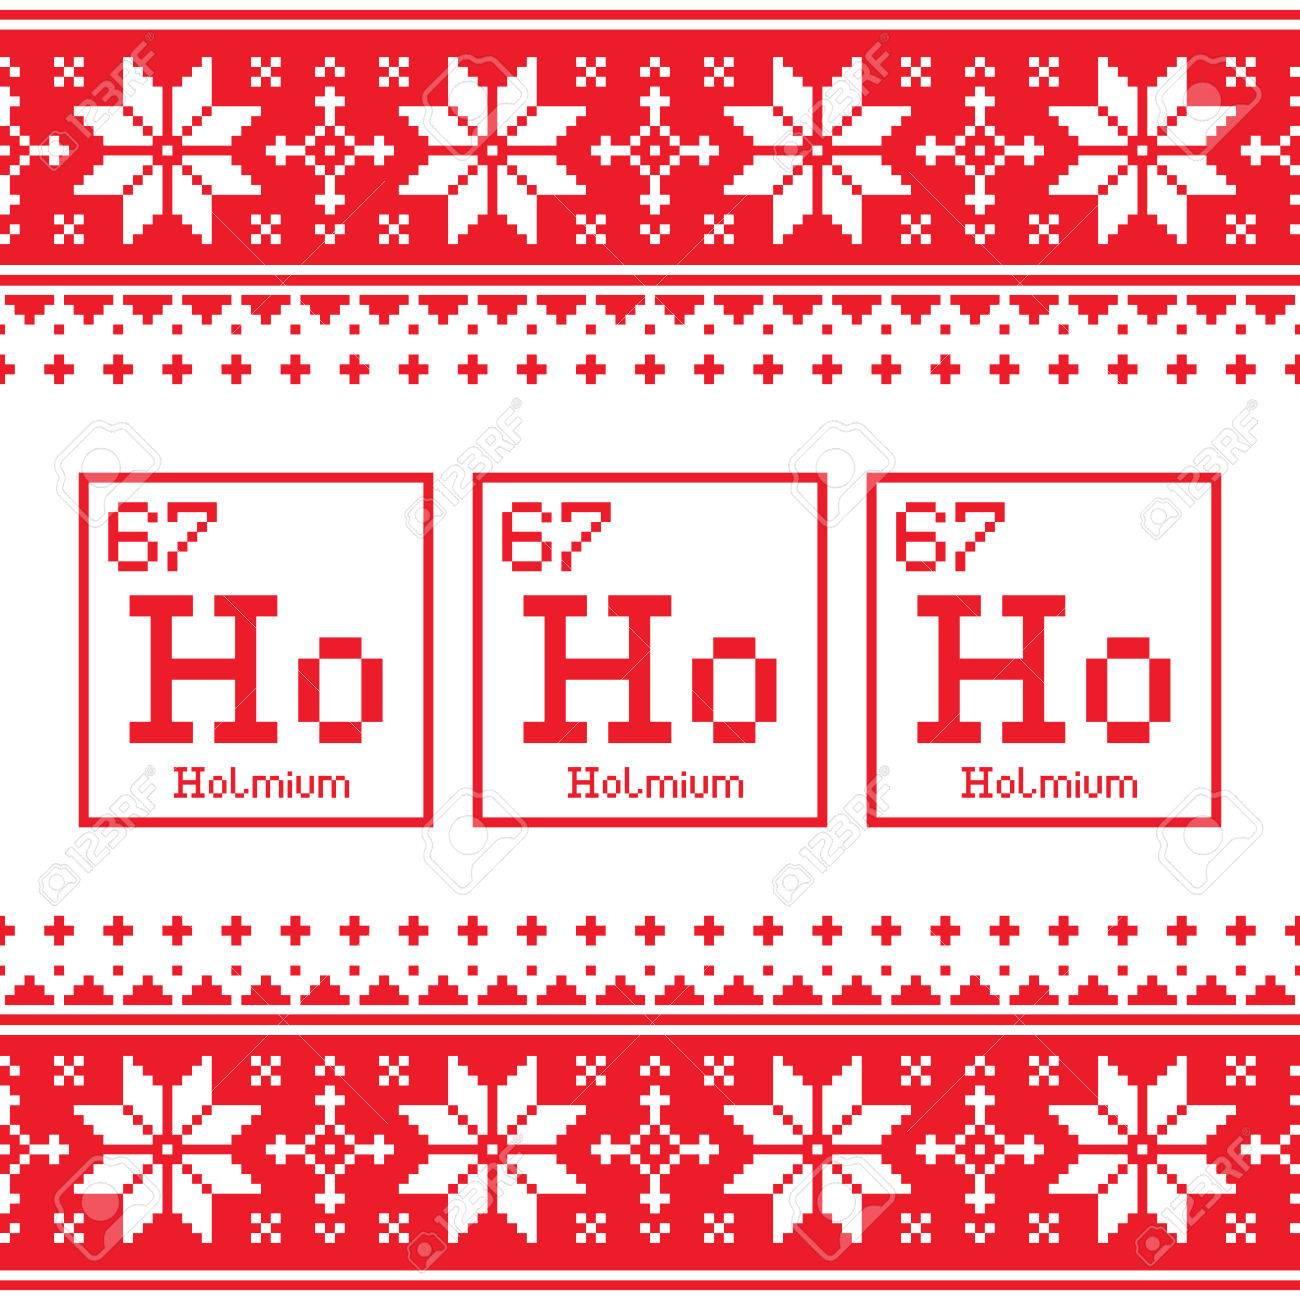 Ugly Christmas Sweaters Patterns.Geek Christmas Seamless Pattern Ho Ho Ho Chemistry Periodic